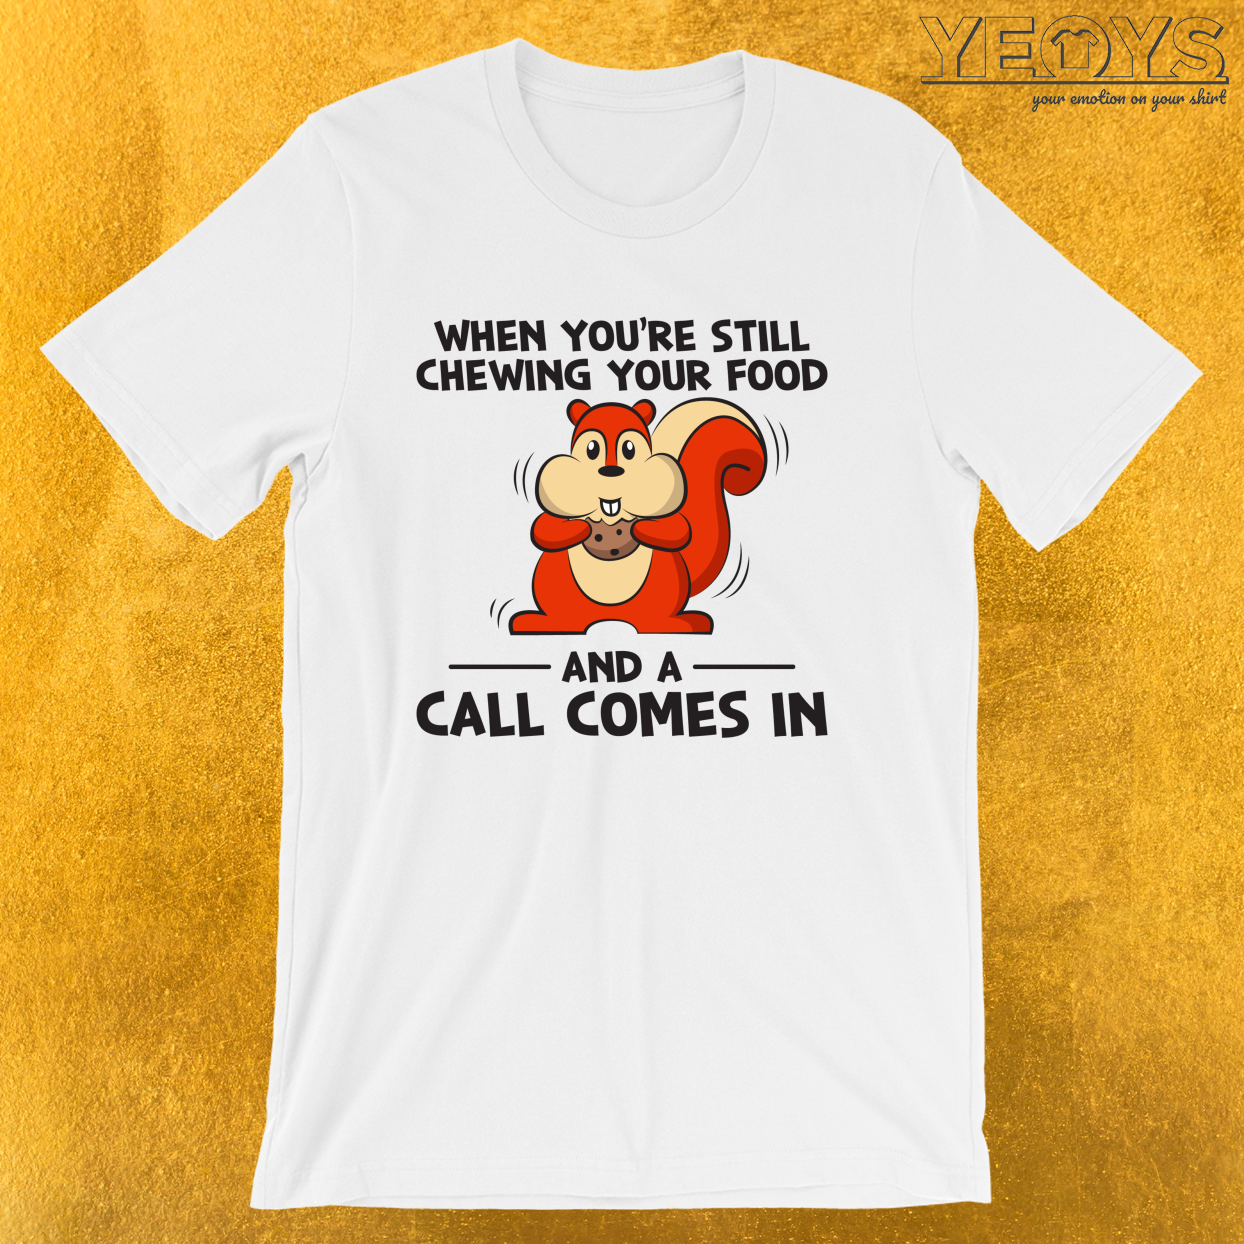 When You're Still Chewing Your Food And A Call Comes In – Customer Service Quotes Tee